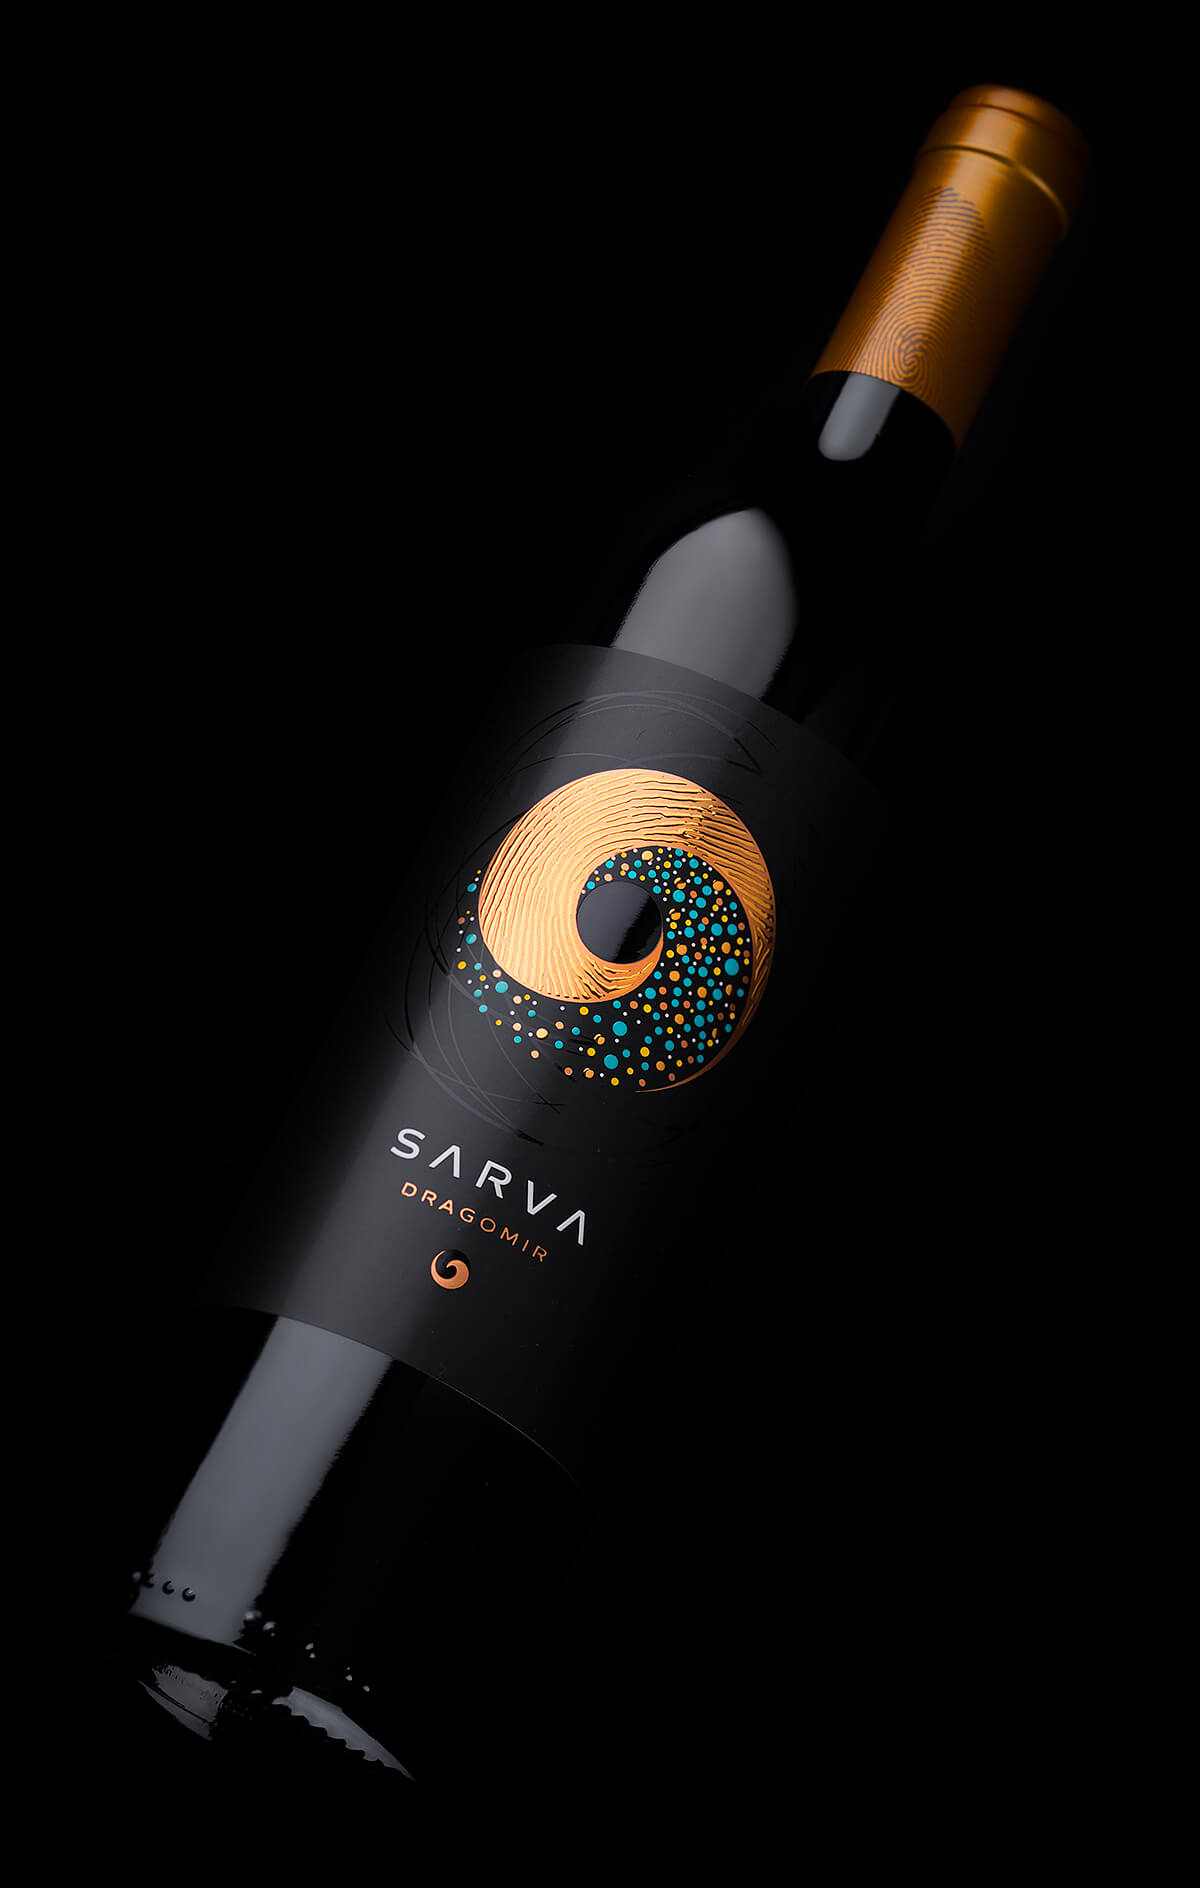 Life Philosophy Revealed in a Contemporary Wine Label Design